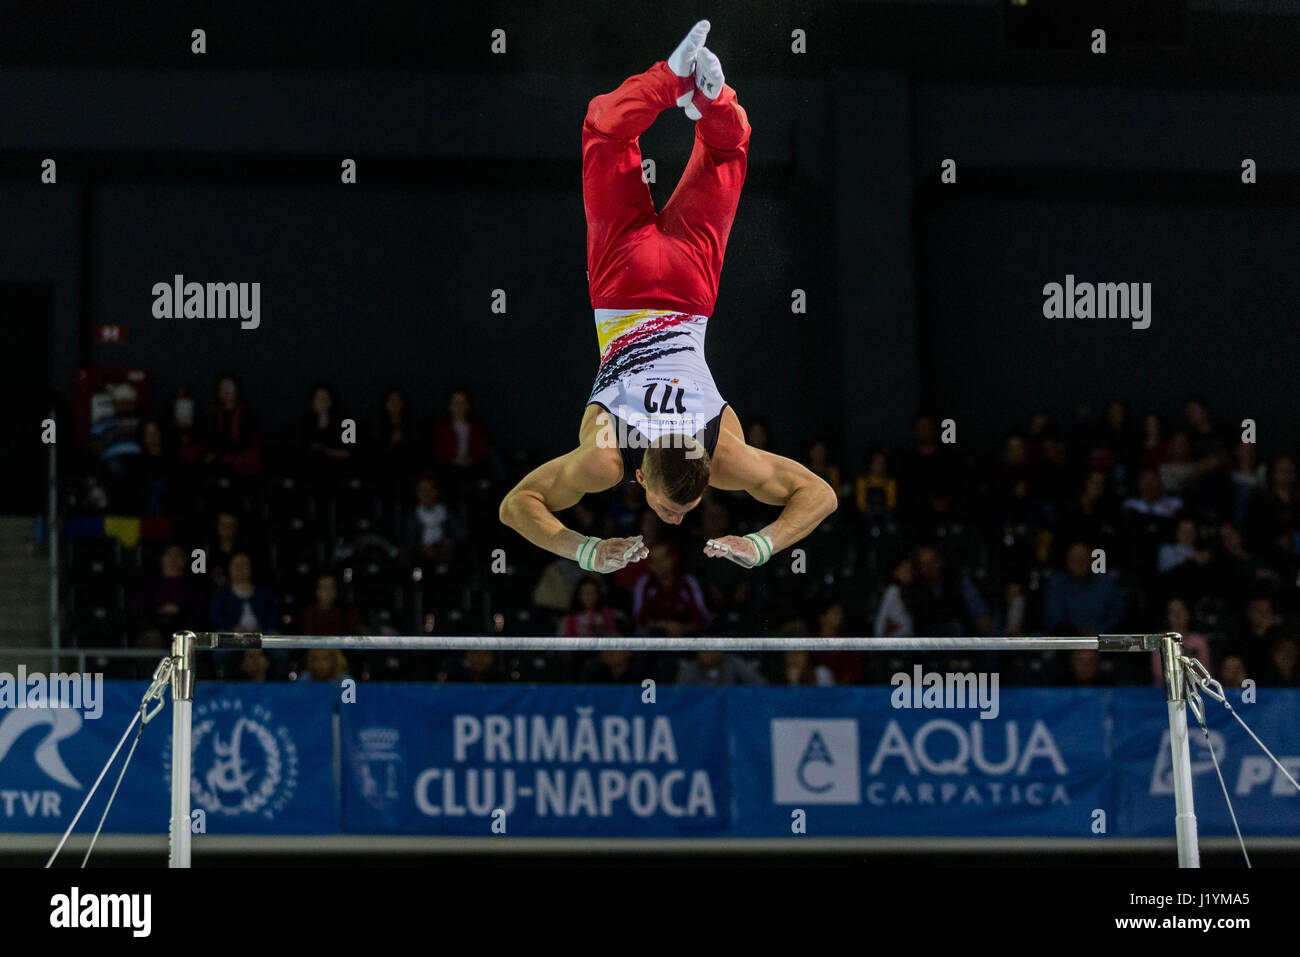 Cluj Napoca, Romania. 21st Apr, 2017. Lukas Dauser from Germany performs at the bar at the UEG European Championships - Stock Image